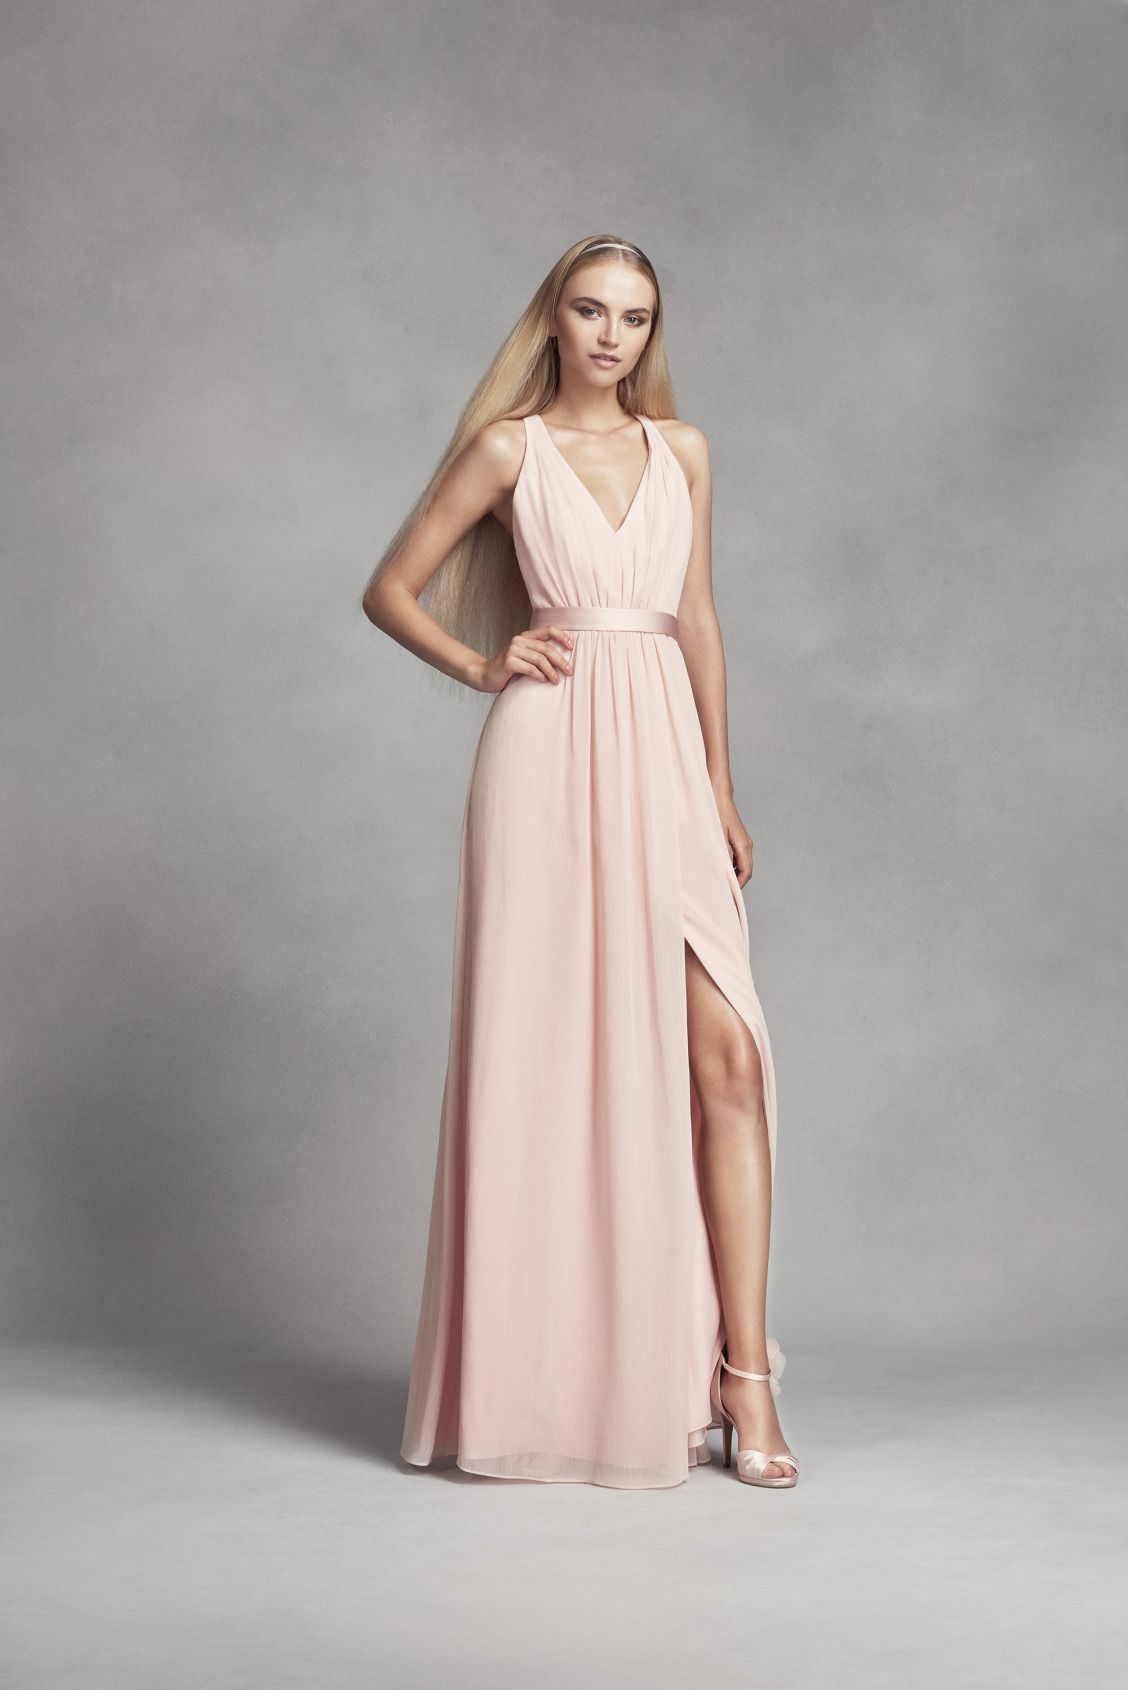 acee260c2e1 Long Petal Pink Halter Chiffon Dress with Low Crisscross Back WHITE by Vera  Wang bridesmaid dress available at David s Bridal